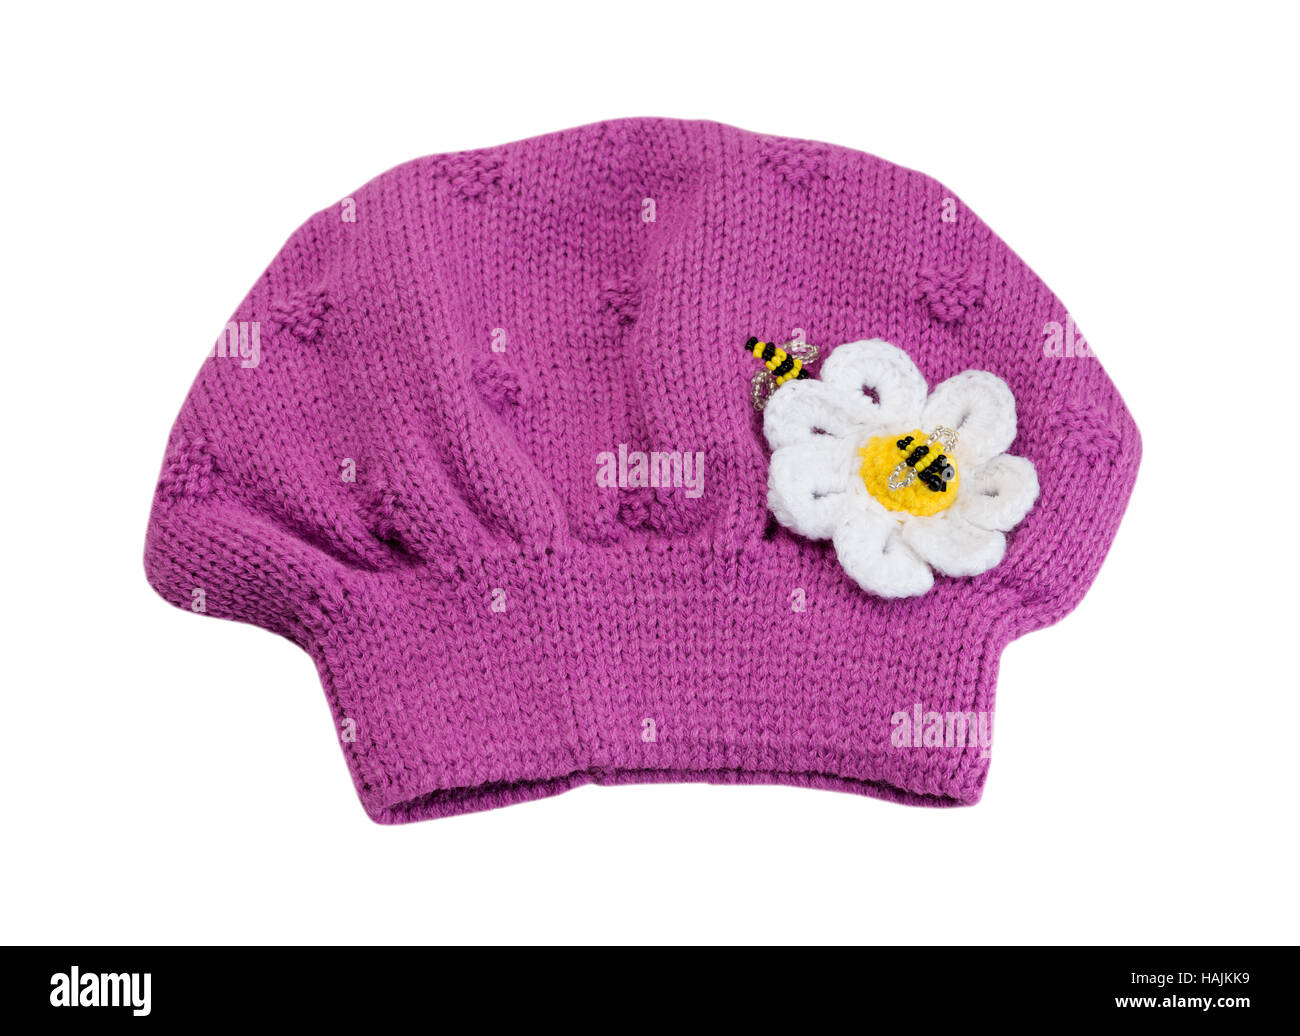 84cdd411af2 Pink knitted hat beret. Isolate on white. - Stock Image